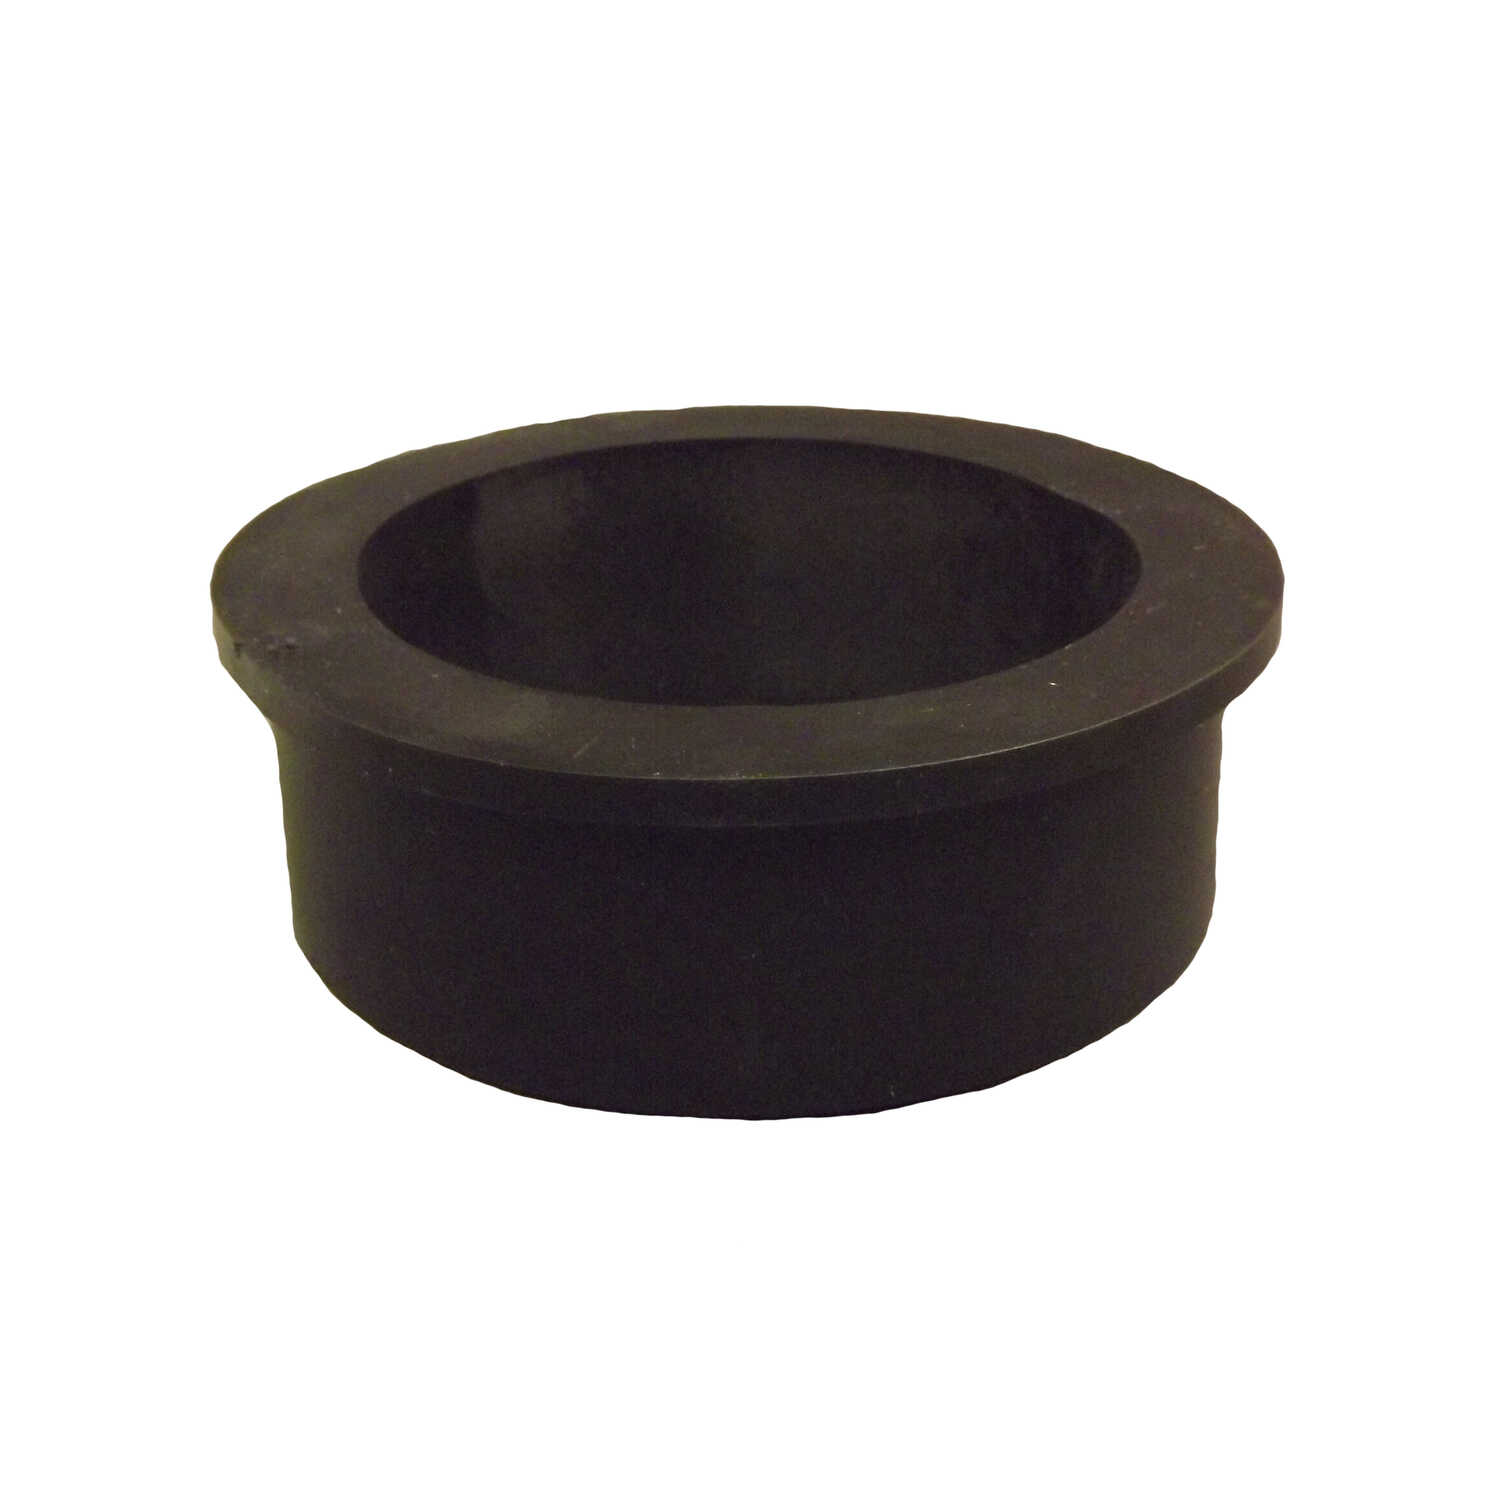 Fernco  Schedule 40  4 in. Compression   x 4 in. Dia. Hub  PVC  Bushing